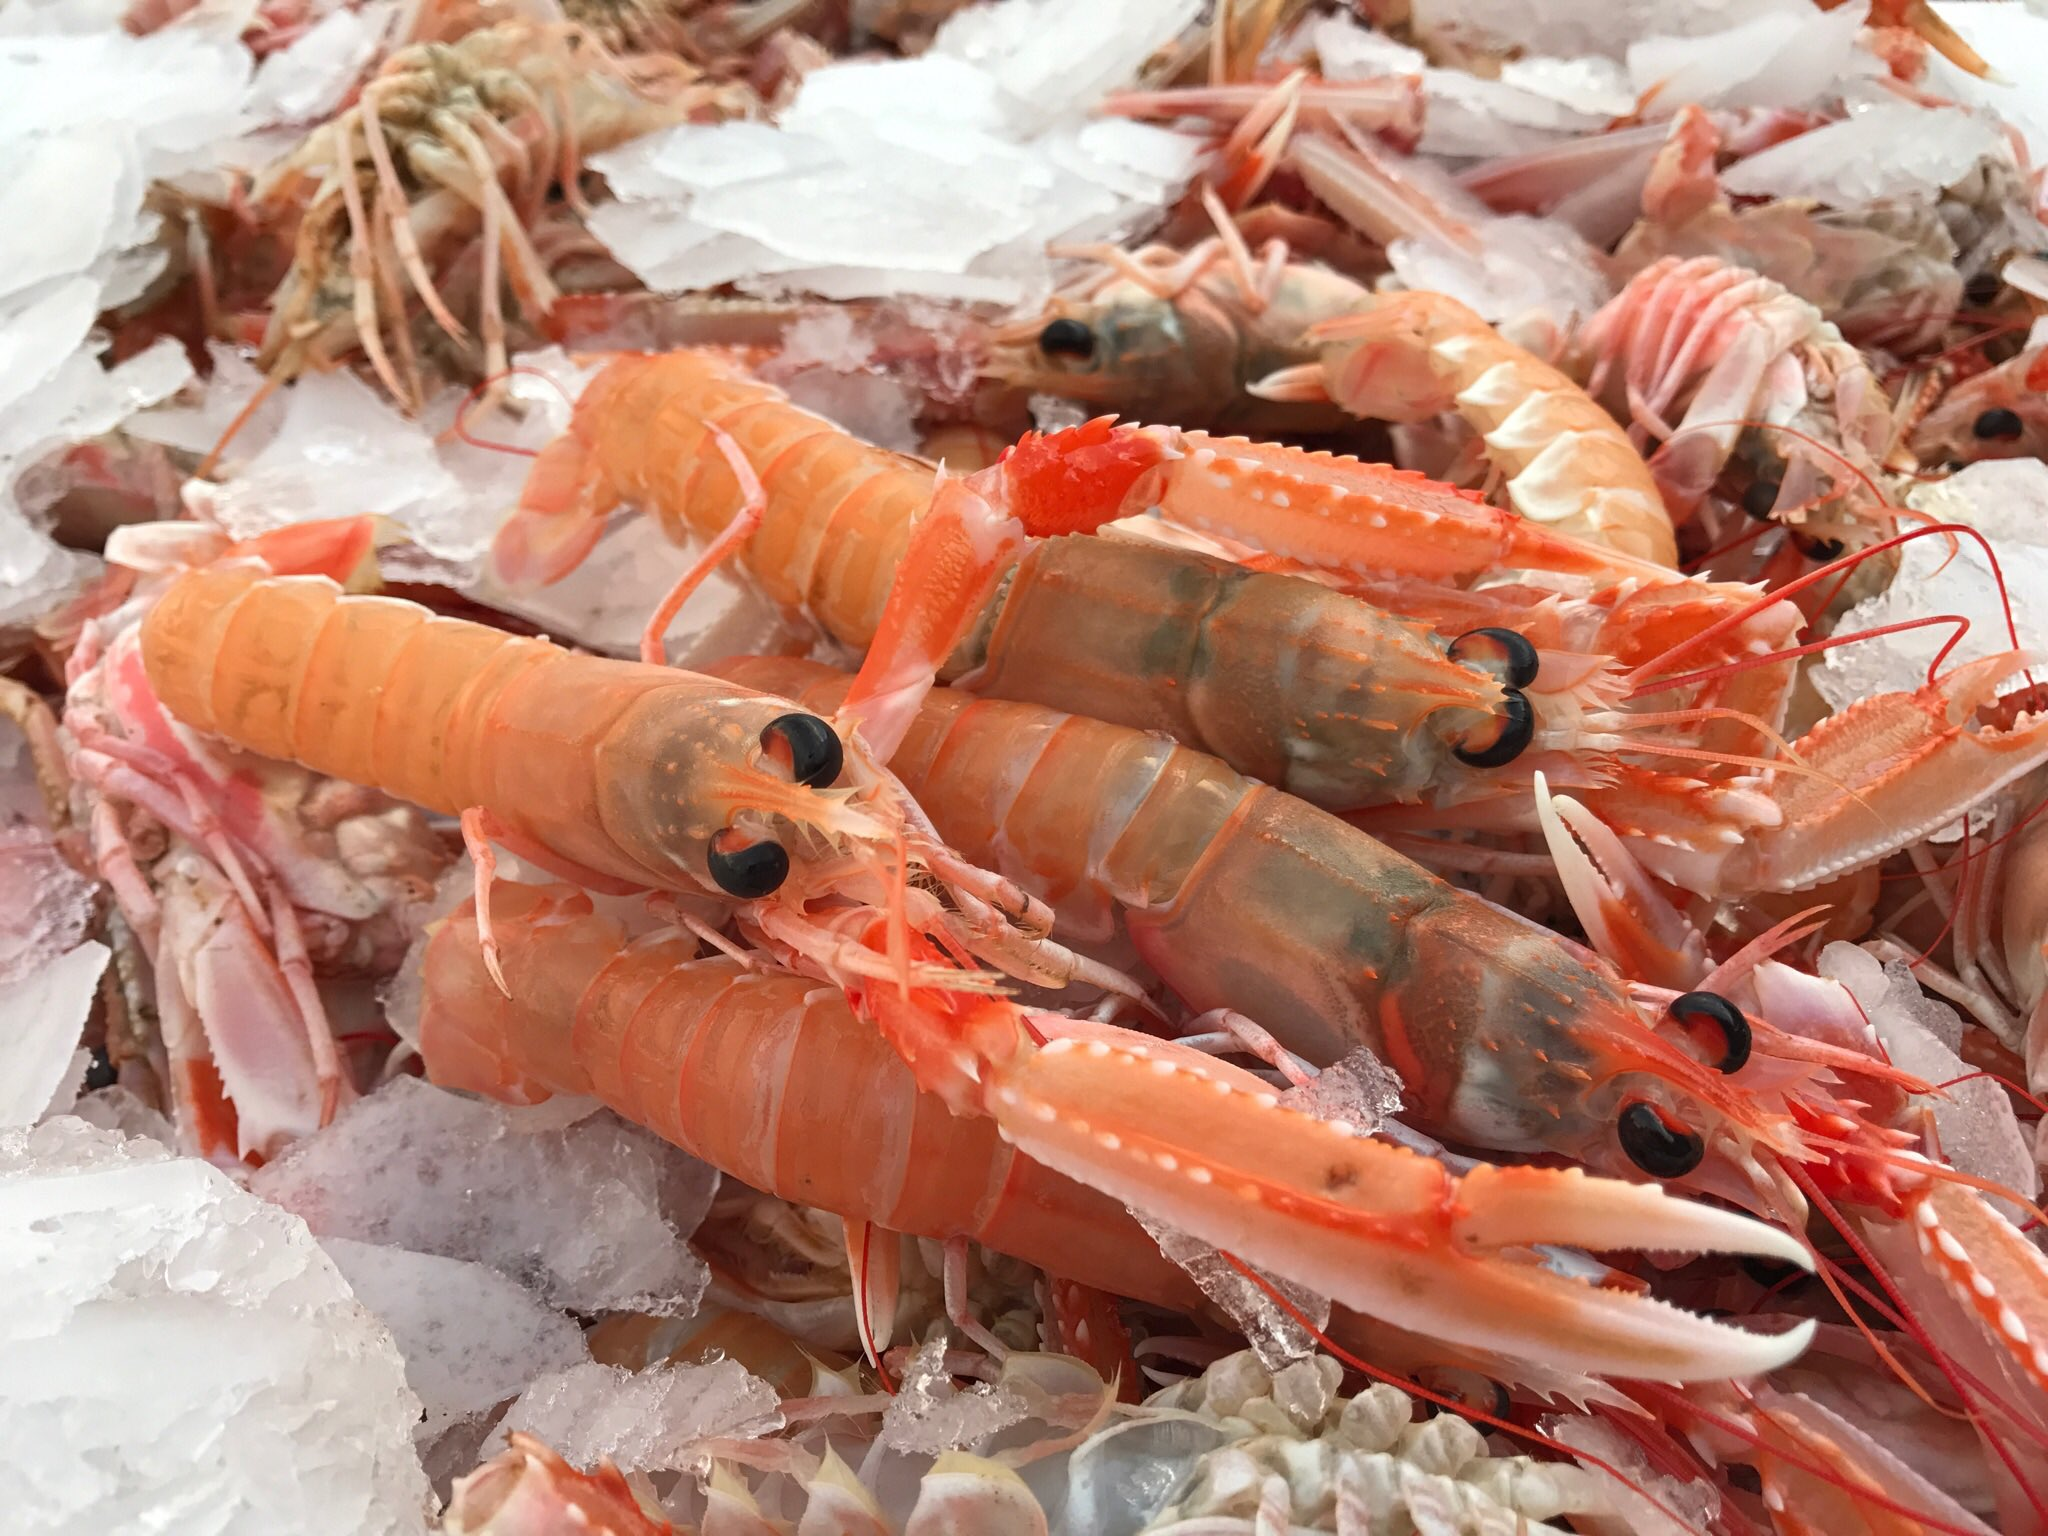 The Scottish Seafood Association has demanded that the Scottish Government gives a clearer COVID-19 timeline for reopening the ecomony